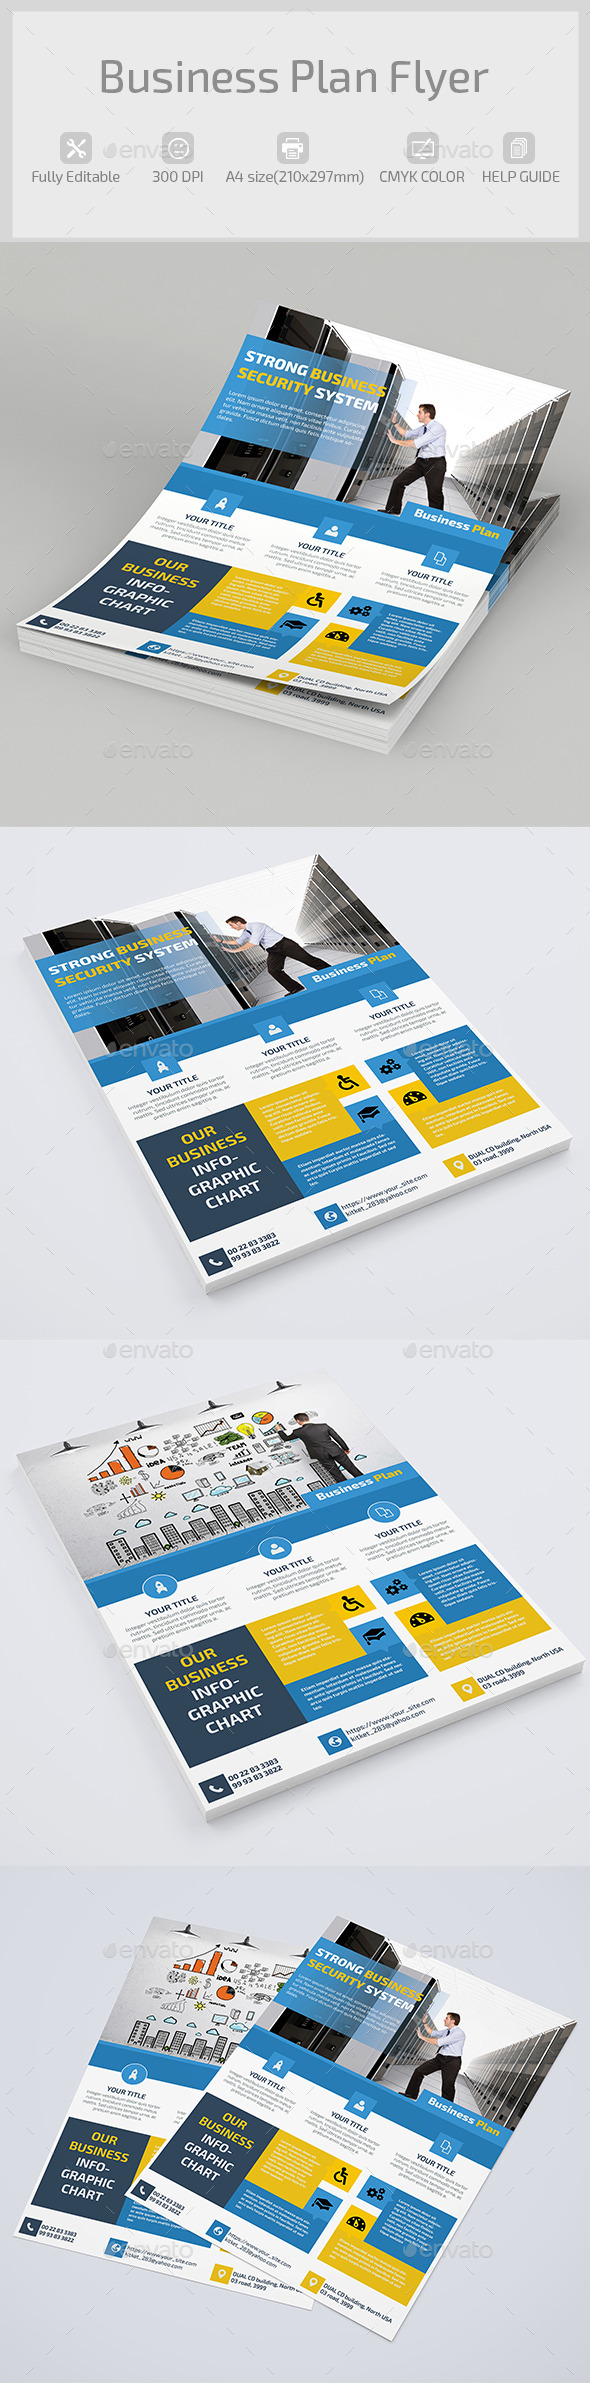 Business Plan Flyer - Corporate Flyers